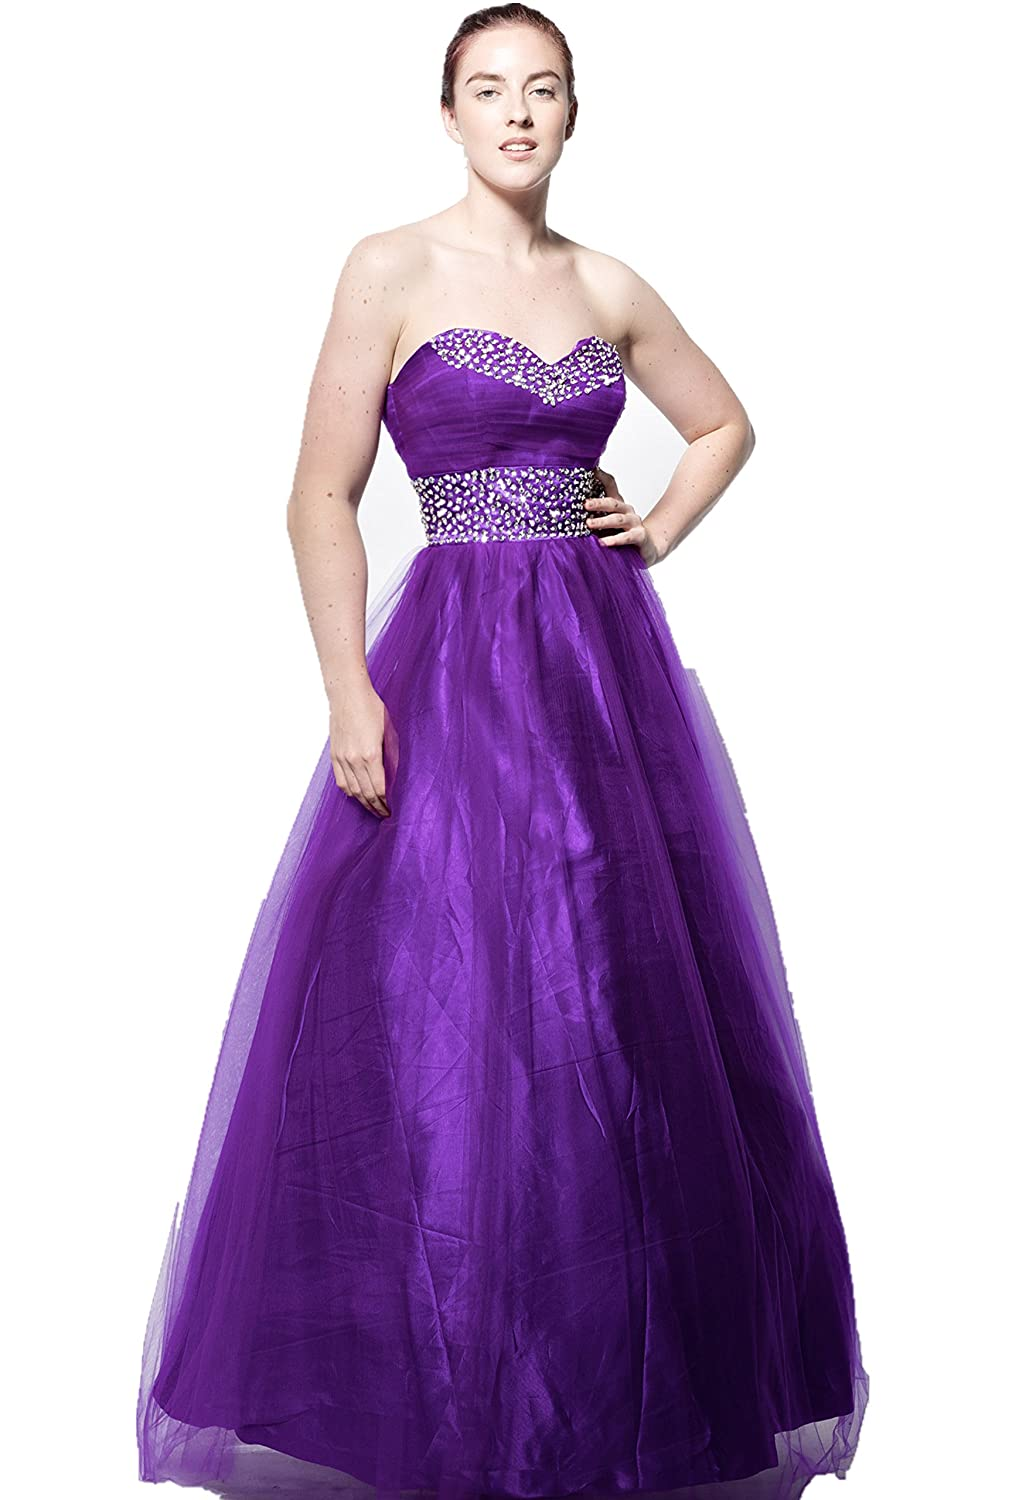 atopdress@YM5 satin BALL Evening prom sequined gown dress Cross design (8, Purple): Amazon.co.uk: Clothing